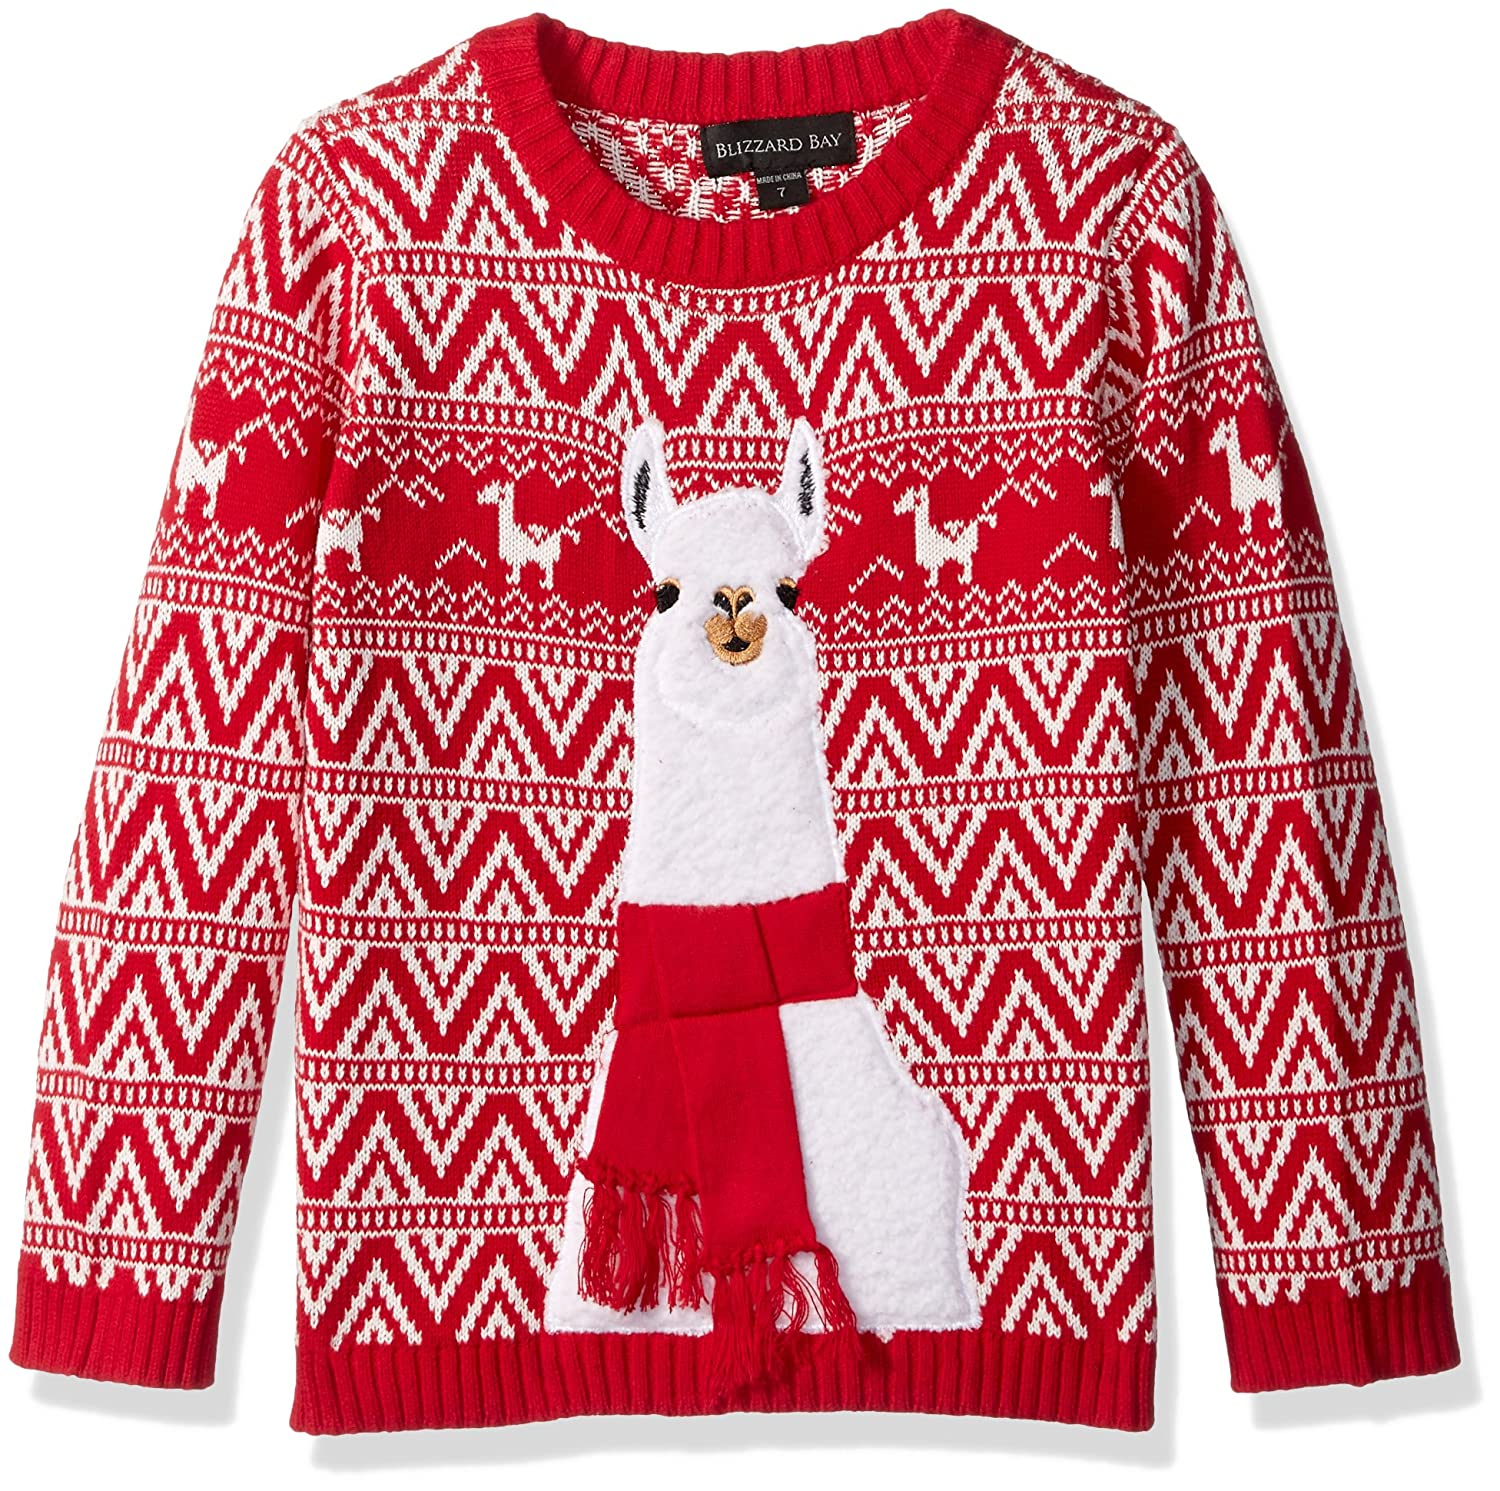 Red Sweater Amazon Her Sweater